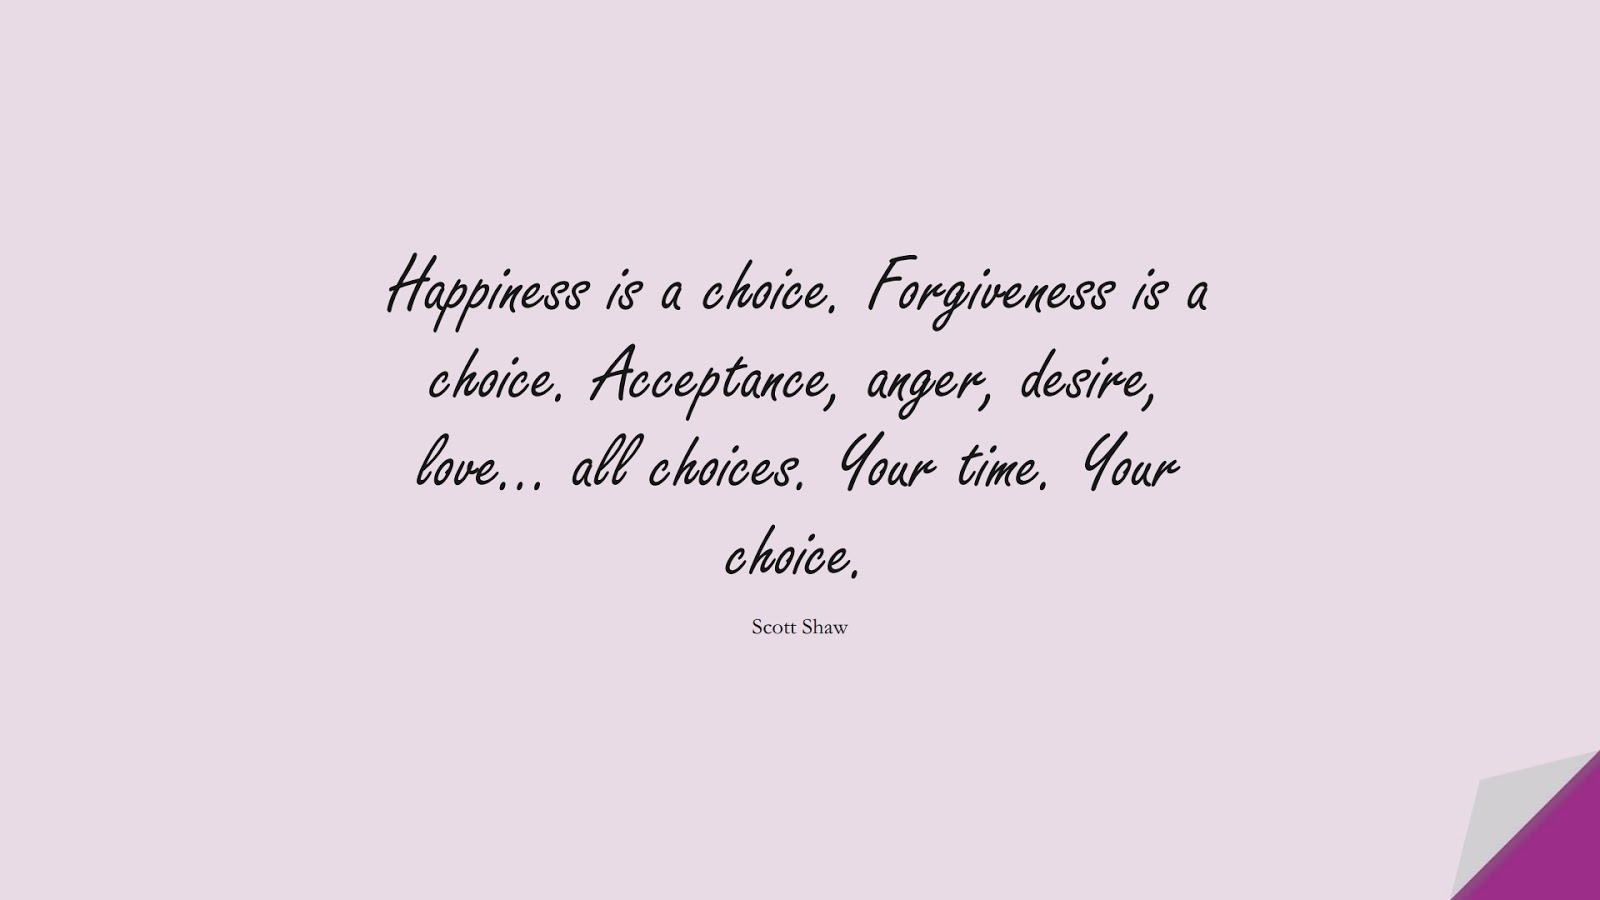 Happiness is a choice. Forgiveness is a choice. Acceptance, anger, desire, love… all choices. Your time. Your choice. (Scott Shaw);  #StoicQuotes